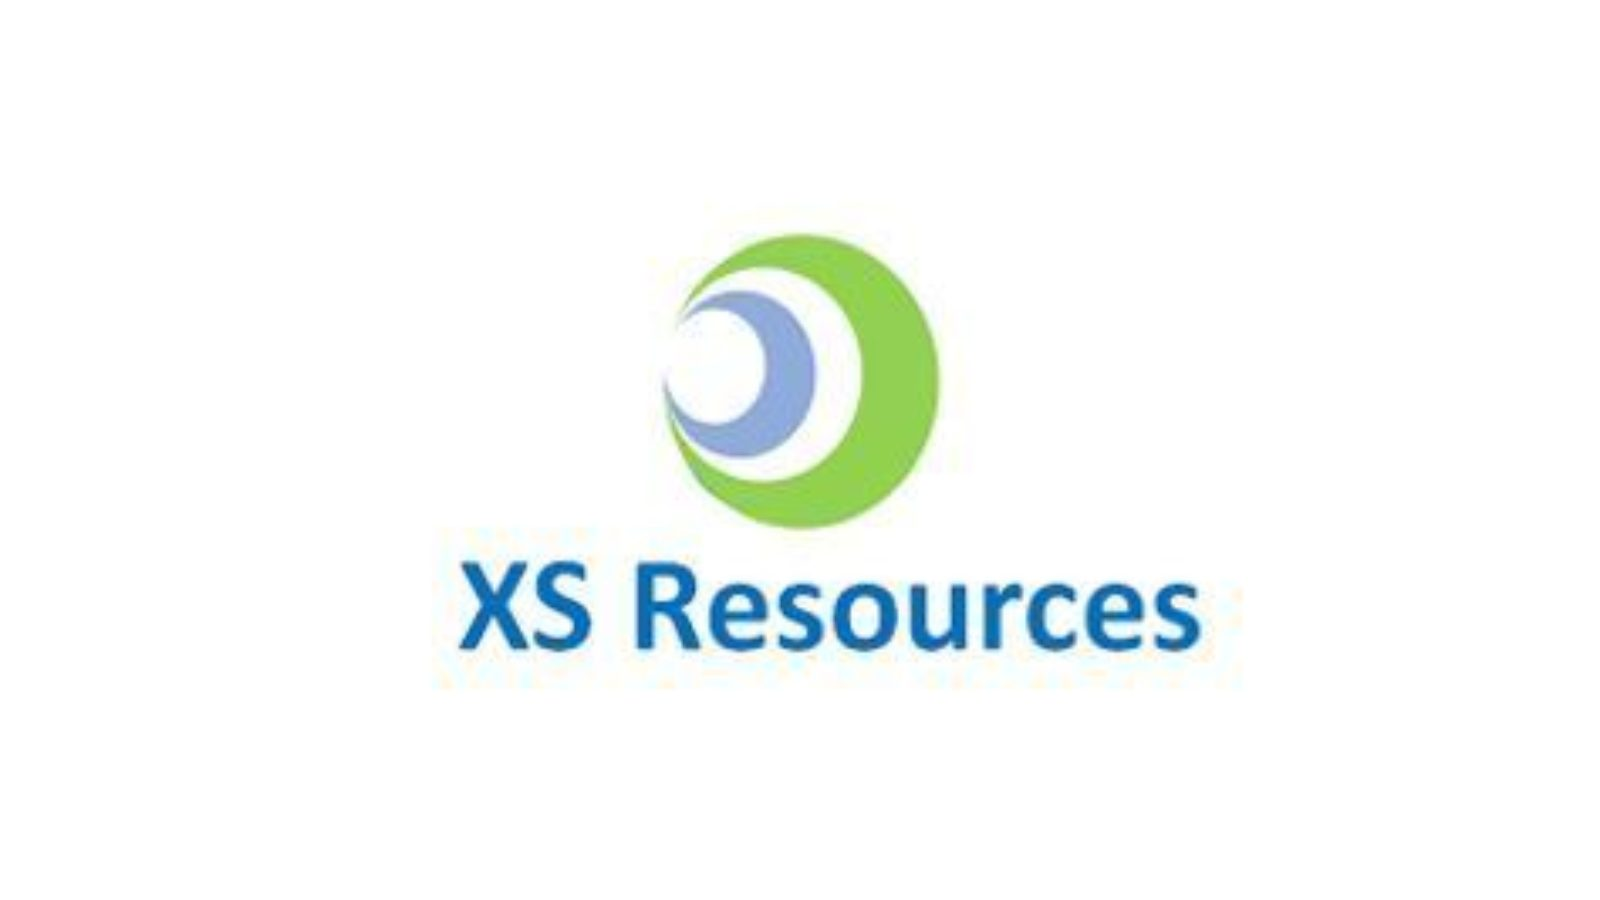 XS Resources: Combating e-waste